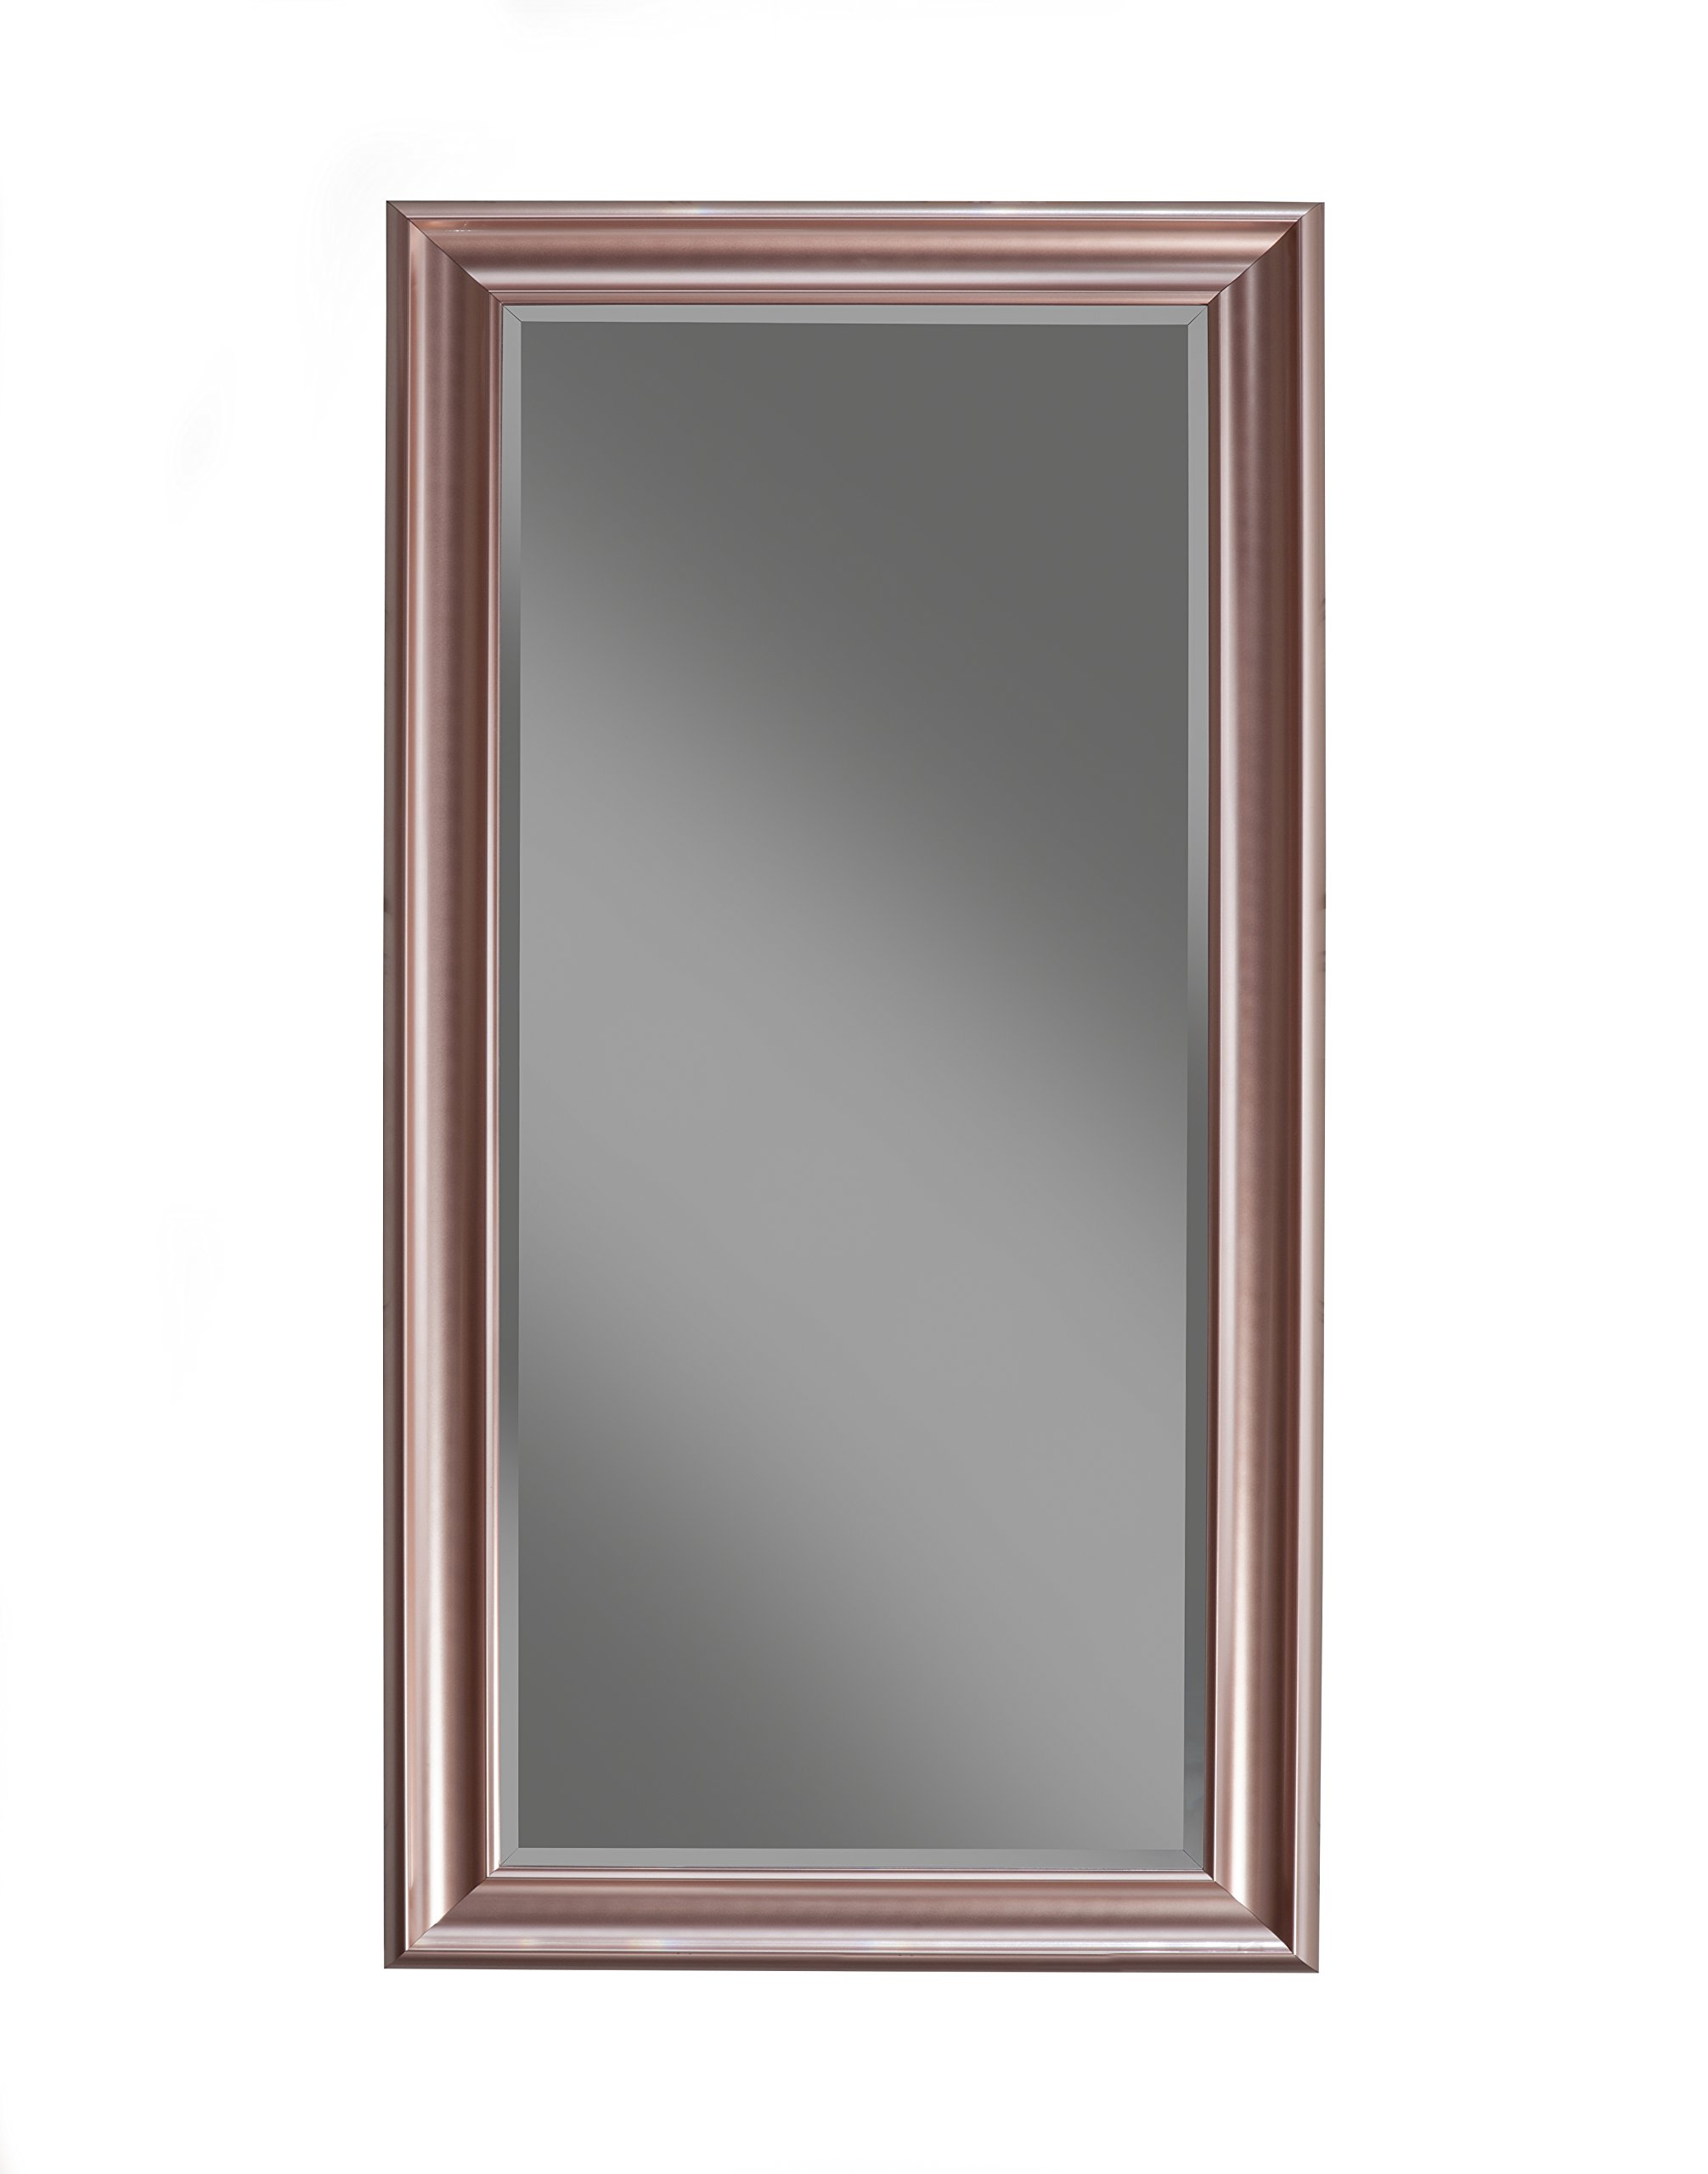 Sandberg Furniture, Full Length Leaner Mirror, Rose Gold by Sandberg Furniture